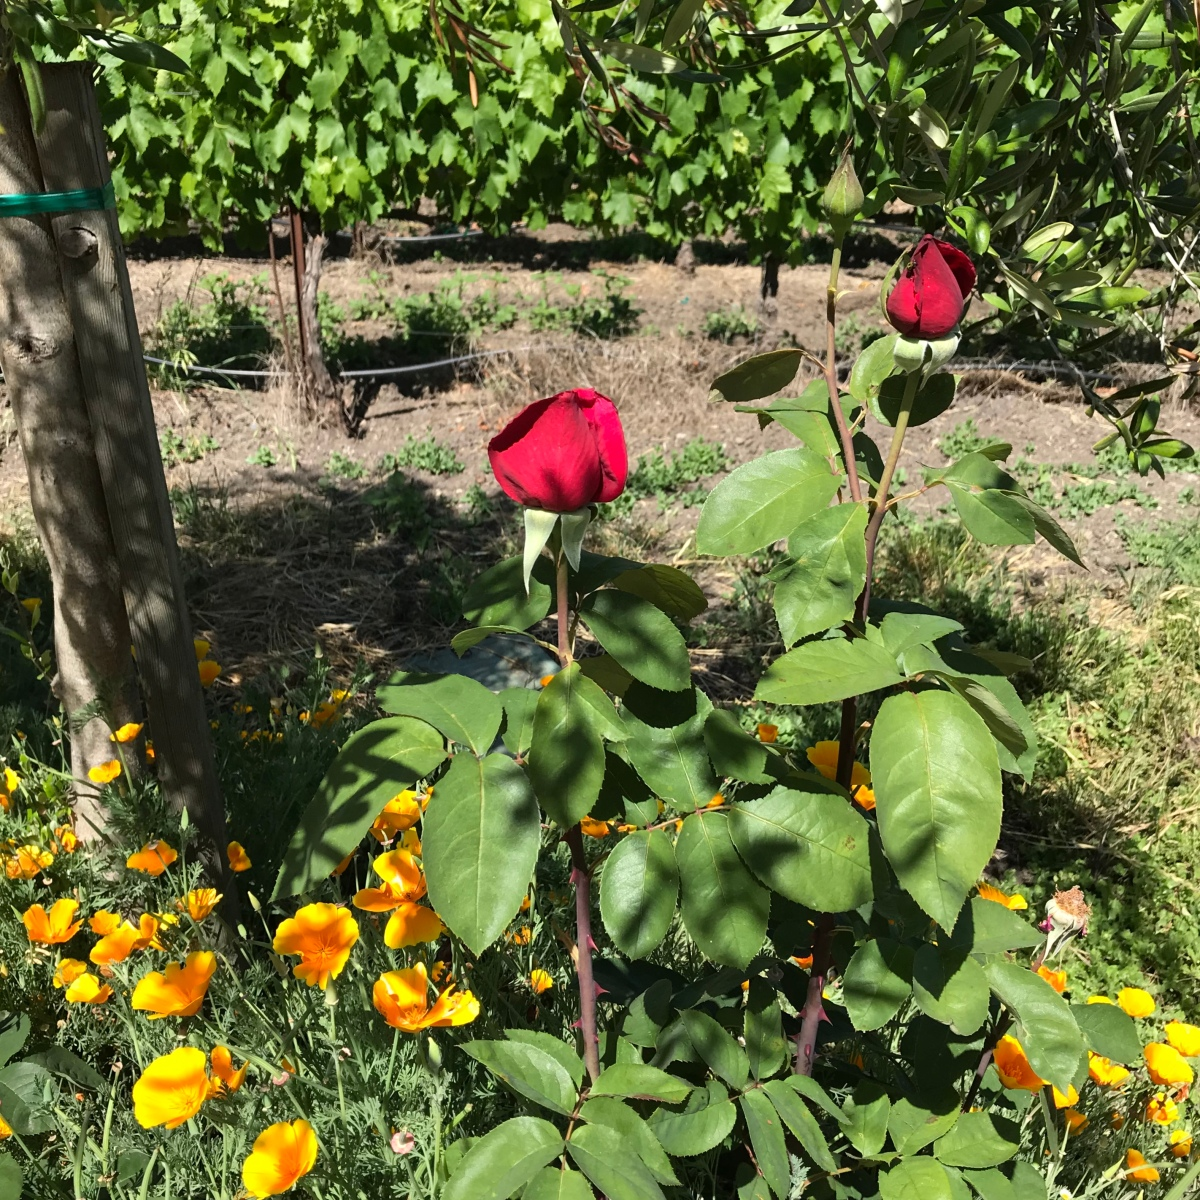 Roses And Poppies